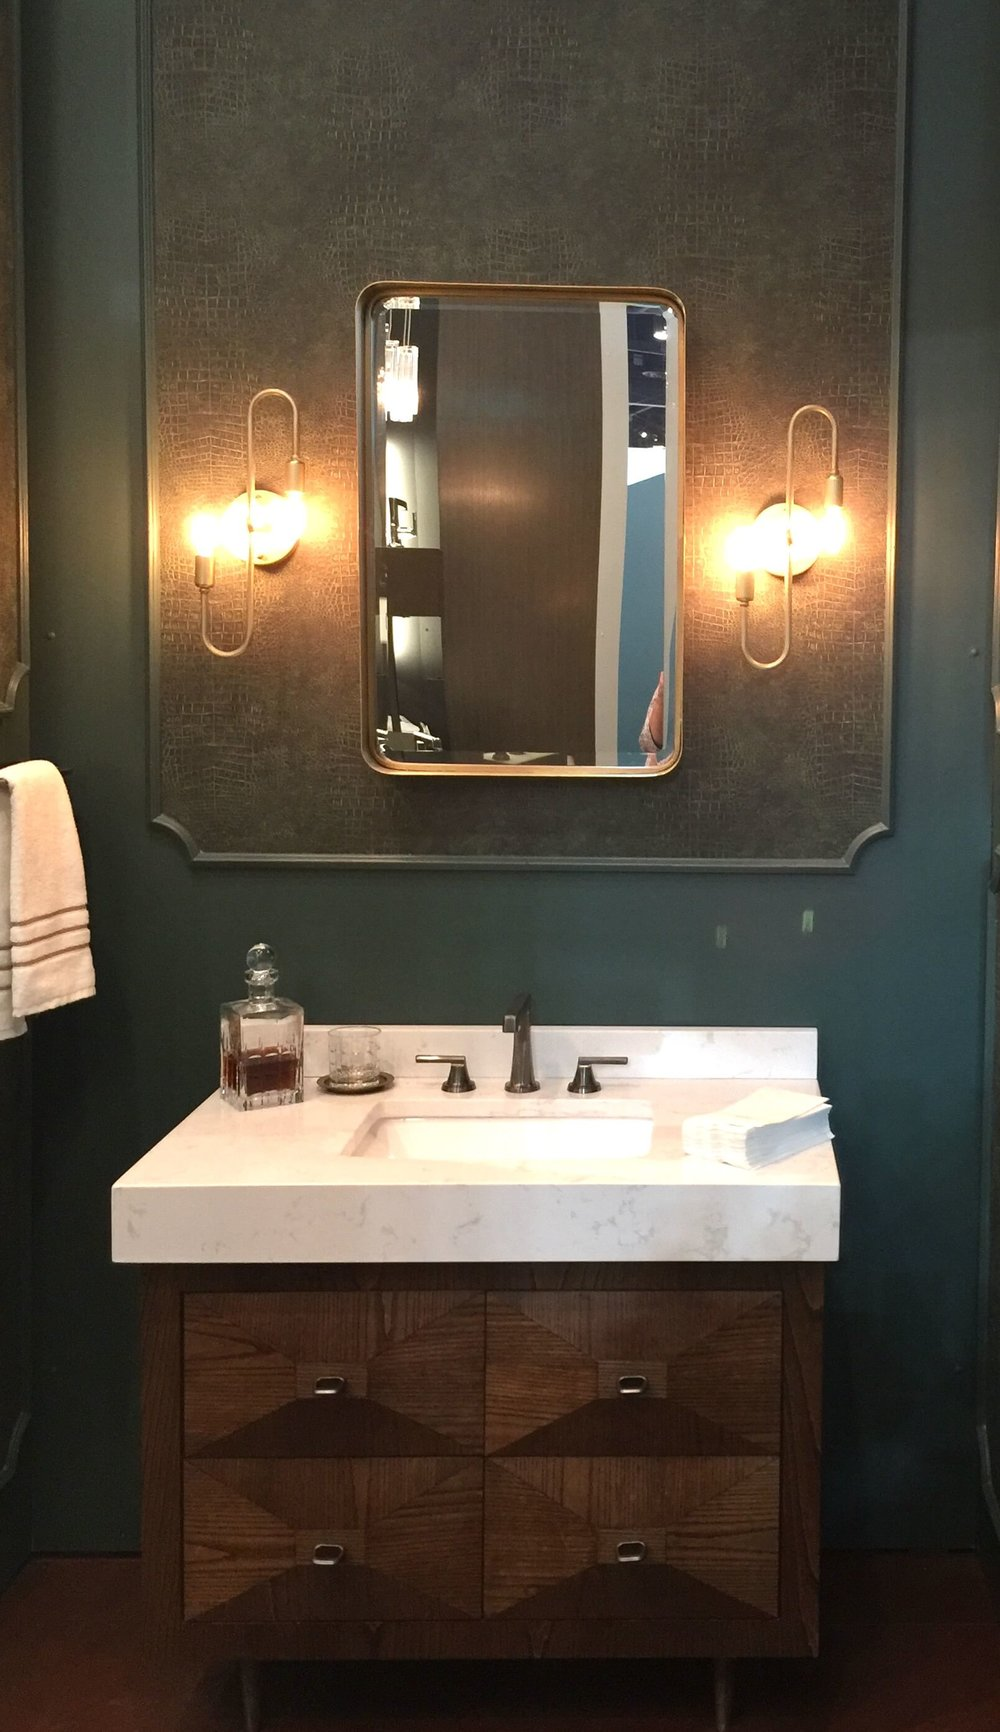 Brizo bathroom vignette KBIS2018 #brizo #bathroom